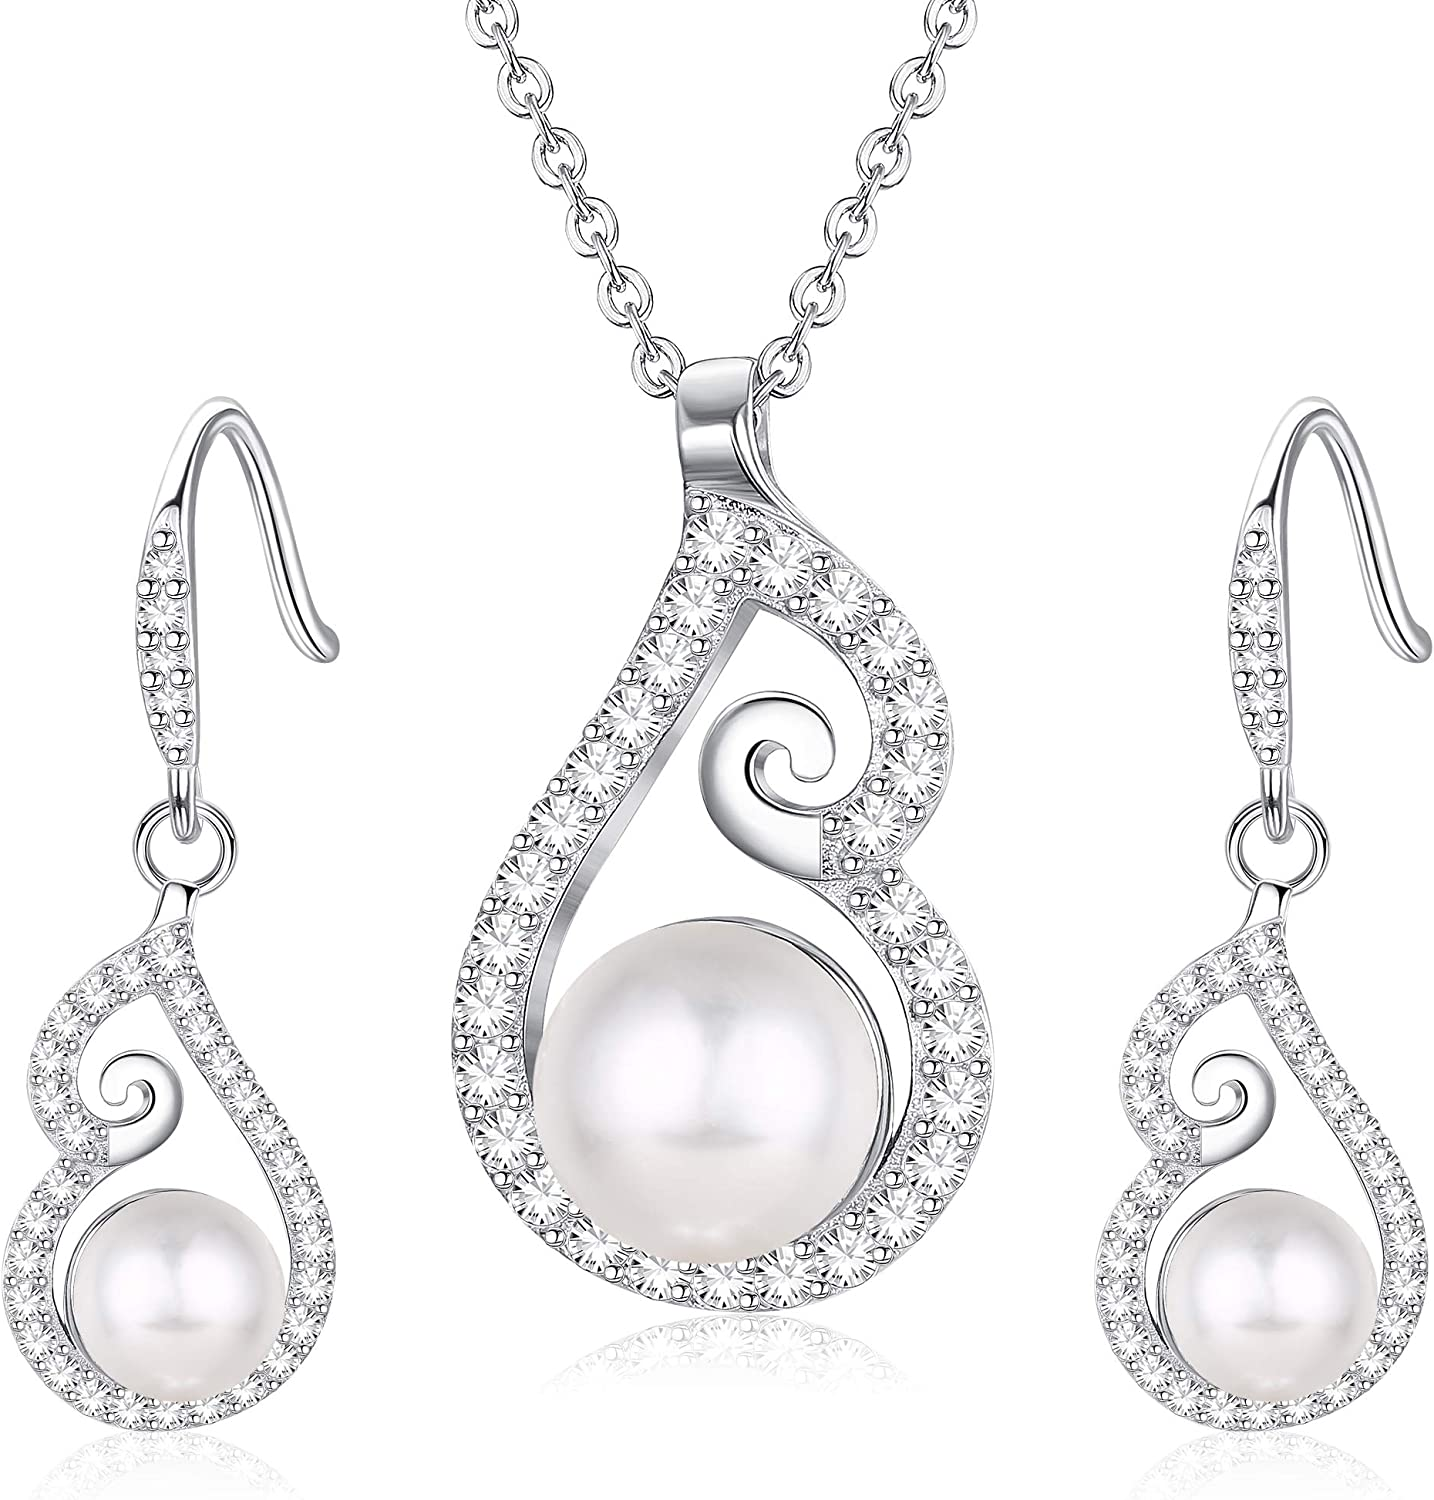 Milacolato Sterling Silver Ivory Pearl Wedding Necklace and Earrings Crystal Bridal Jewelry Set for Brides and Bridesmaids